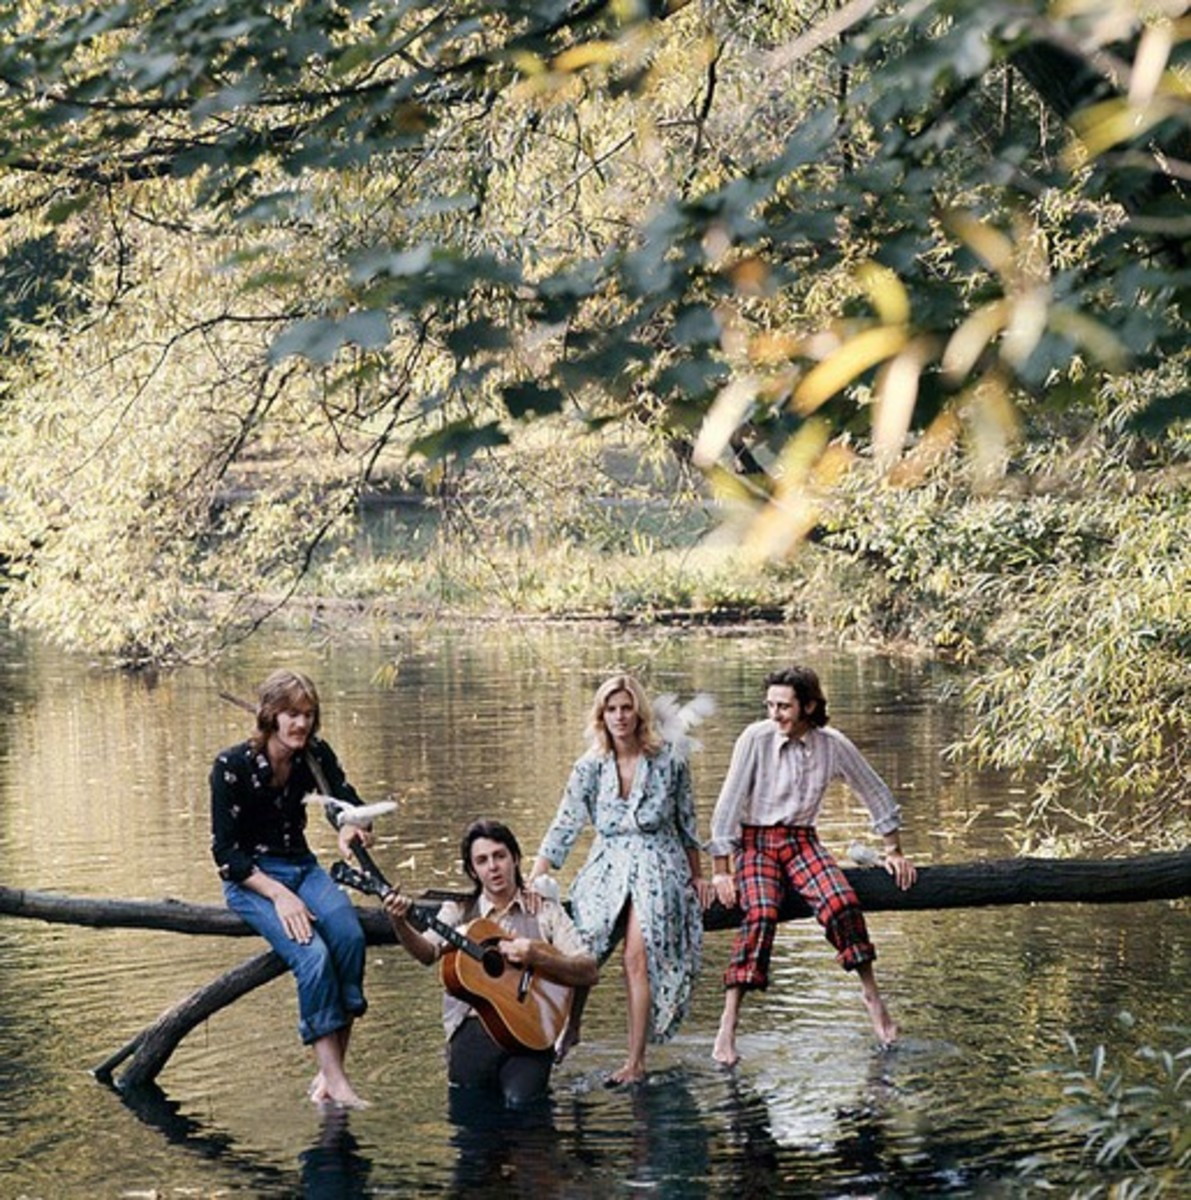 Album cover of Wild Life by Wings on Apple, December 1971